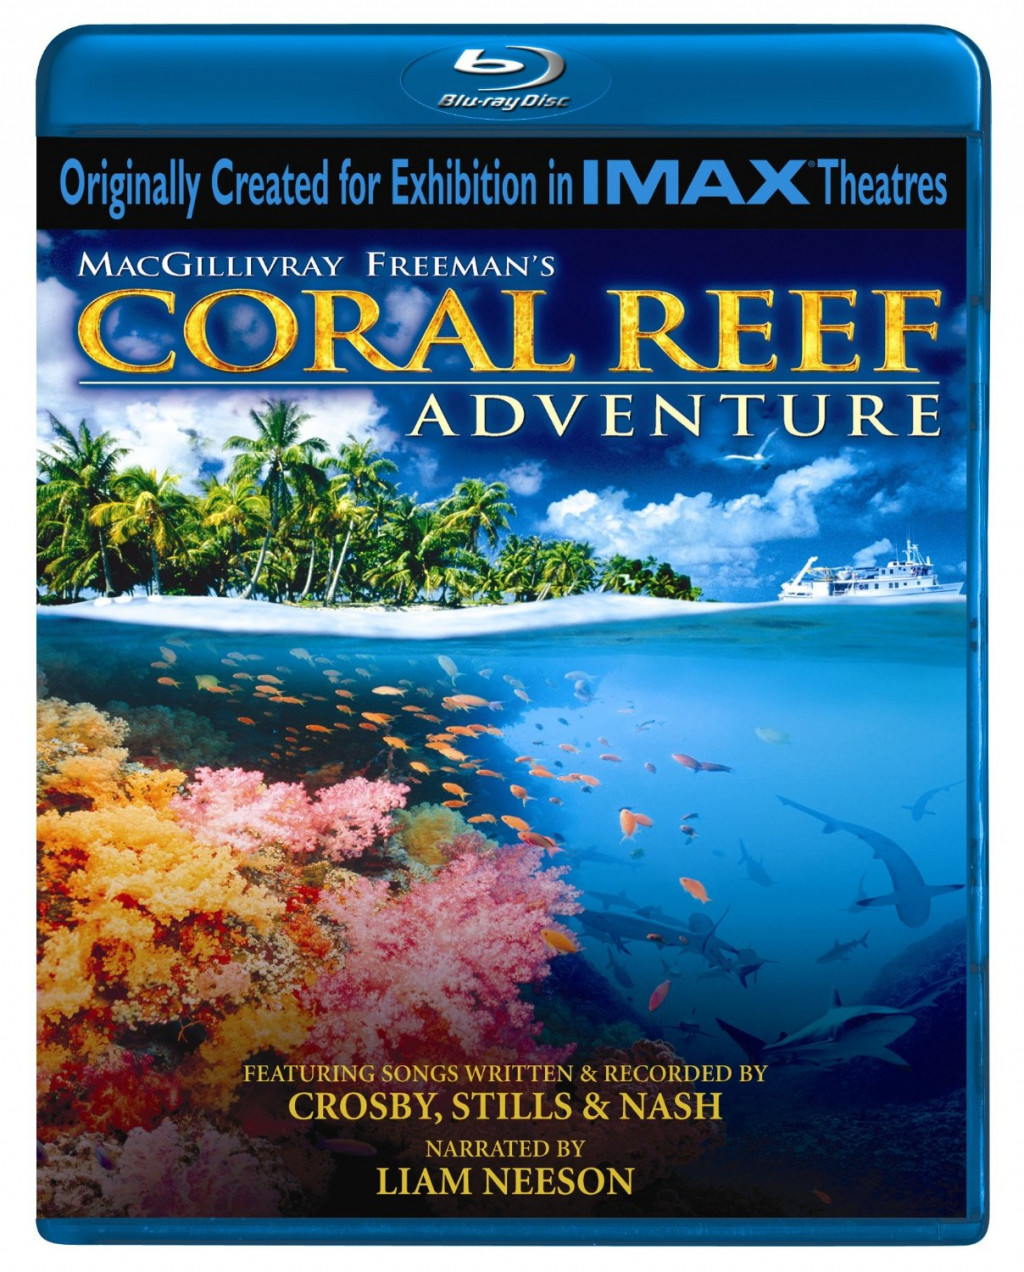 Imax Coral Reef Adventure Review